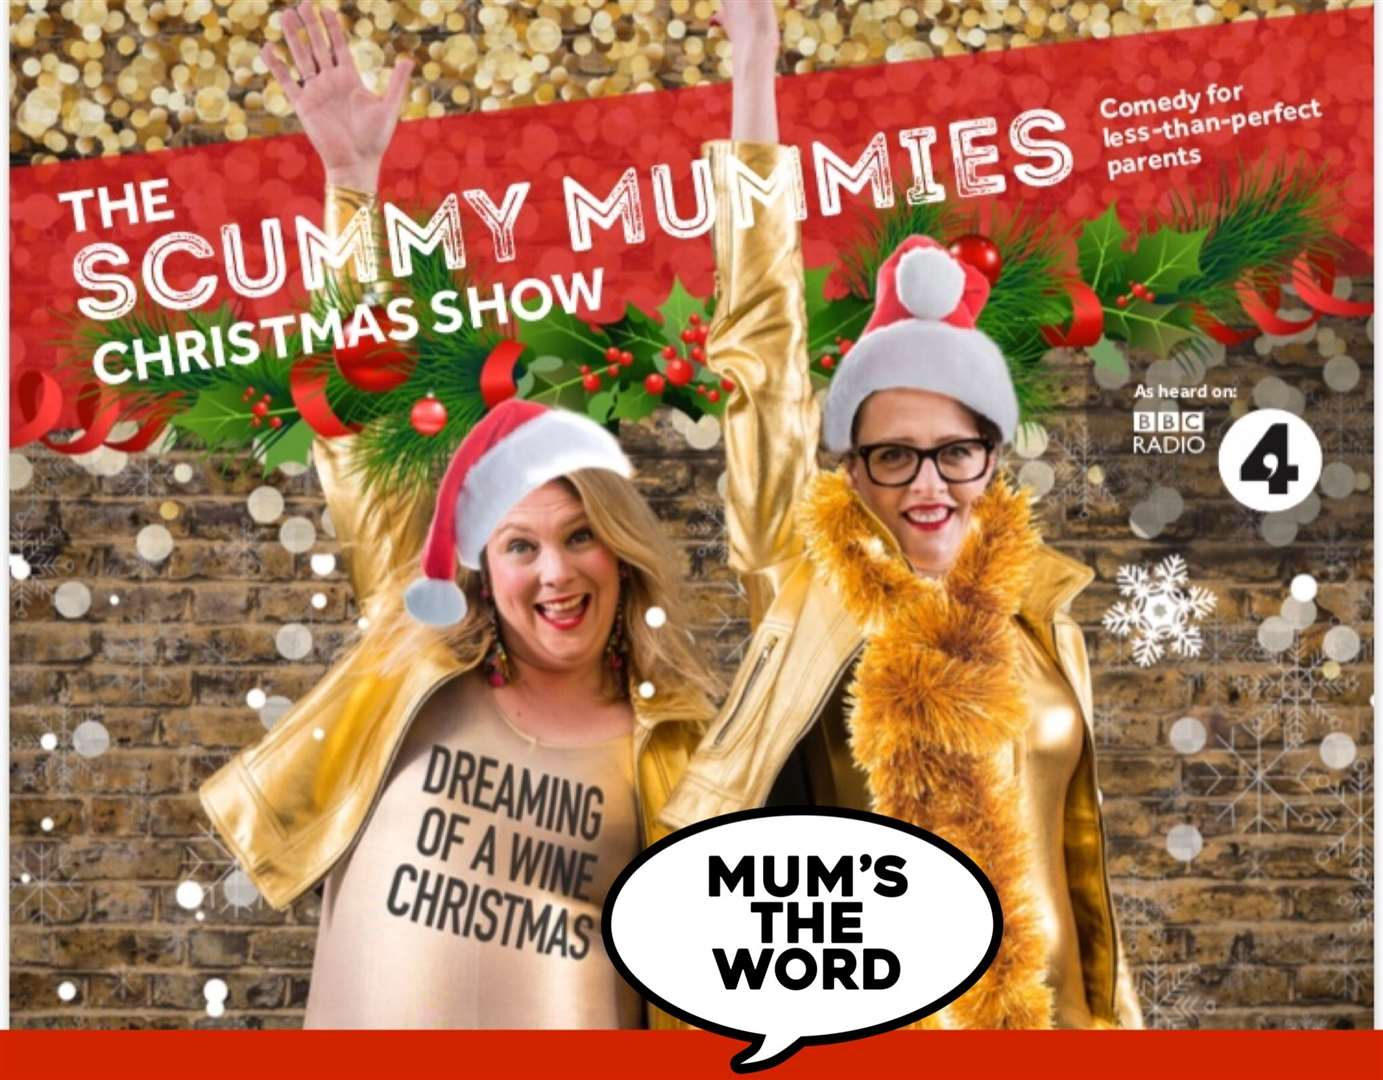 The Scummy Mummies are coming to Kent for one-date only